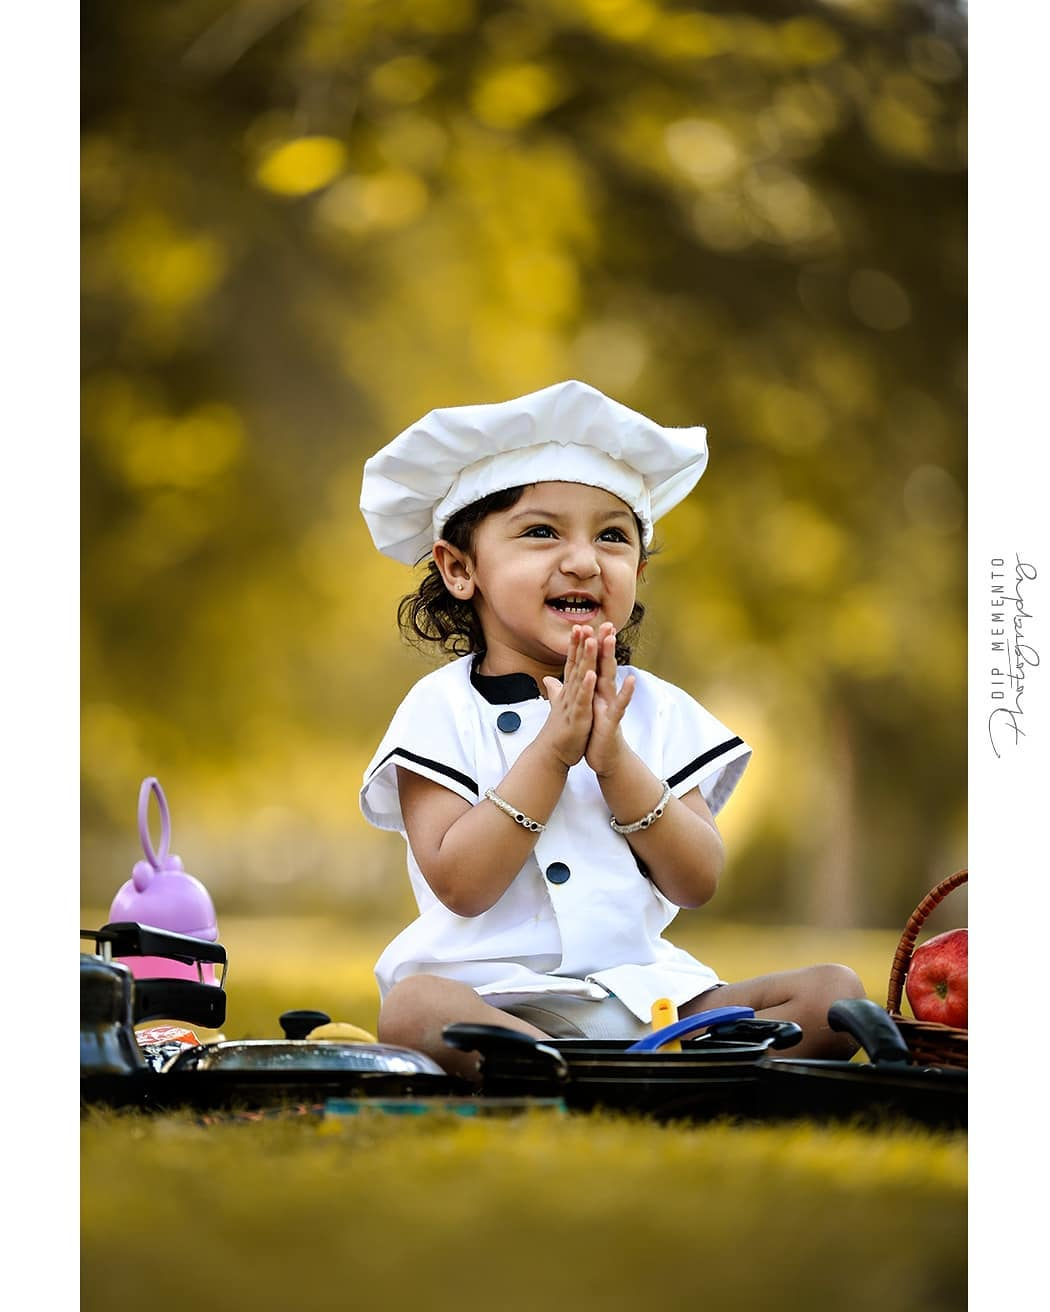 H A P P I N E S S is seeing you kid Happy... .L I T T LE - D H RI V A 🍕🌭🧀🍔🍟🍝🍜🍛🍚🥘🍲🥗🍿🍱🍣 .  Baby/Kids Photography : 9924227745 @dip_memento_photography @meandmyphotography11  @sky_clicks_feelms .  #kidsphotography  #littletoes #tinystars  #cook #food #9925227745  #dipmementophotography  #fineartphotography #india #ahmedabad #kidsphotoshoot  #babyphotoshoot #babyphotography  #indiankids #indianmoms #kids  #dipmementophotography #motherhood #momblogger #kidsstyle #mommyblogger #ahmedabadkidsphotographer  #babiesindia🇮🇳 #babiesindia #kidsofahmedabad  #babyphotographyahmedabad #babyphotographerahmedabad  #momdaughter #indianmombloggers